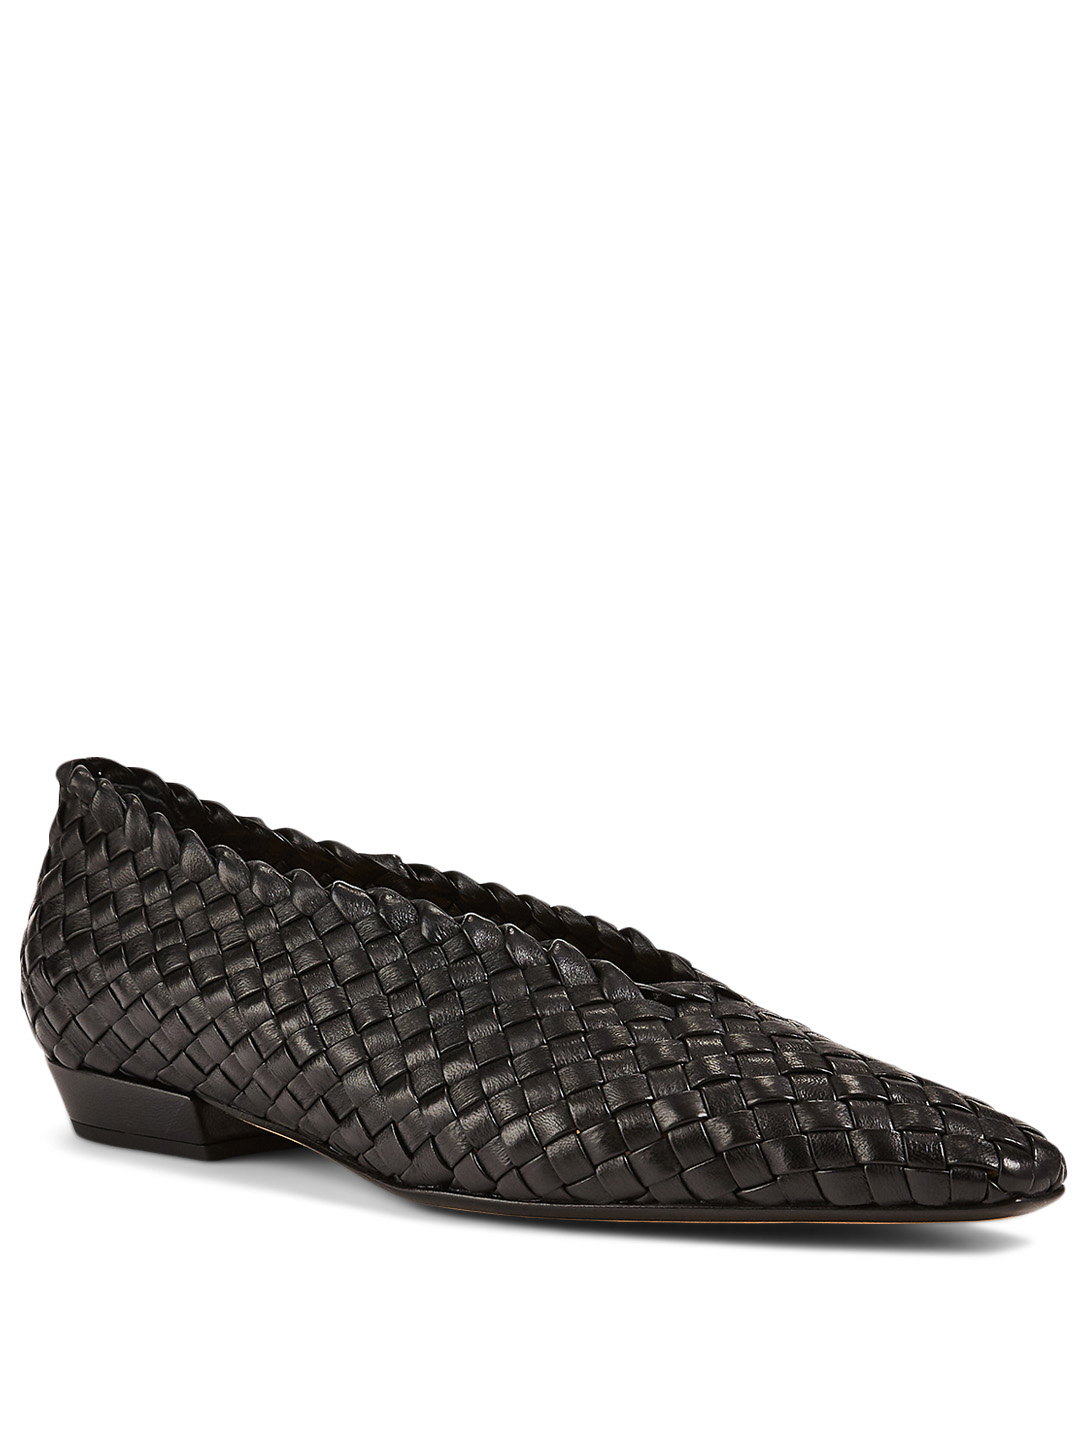 BOTTEGA VENETA Almond Intrecciato Leather Flats Women's Black